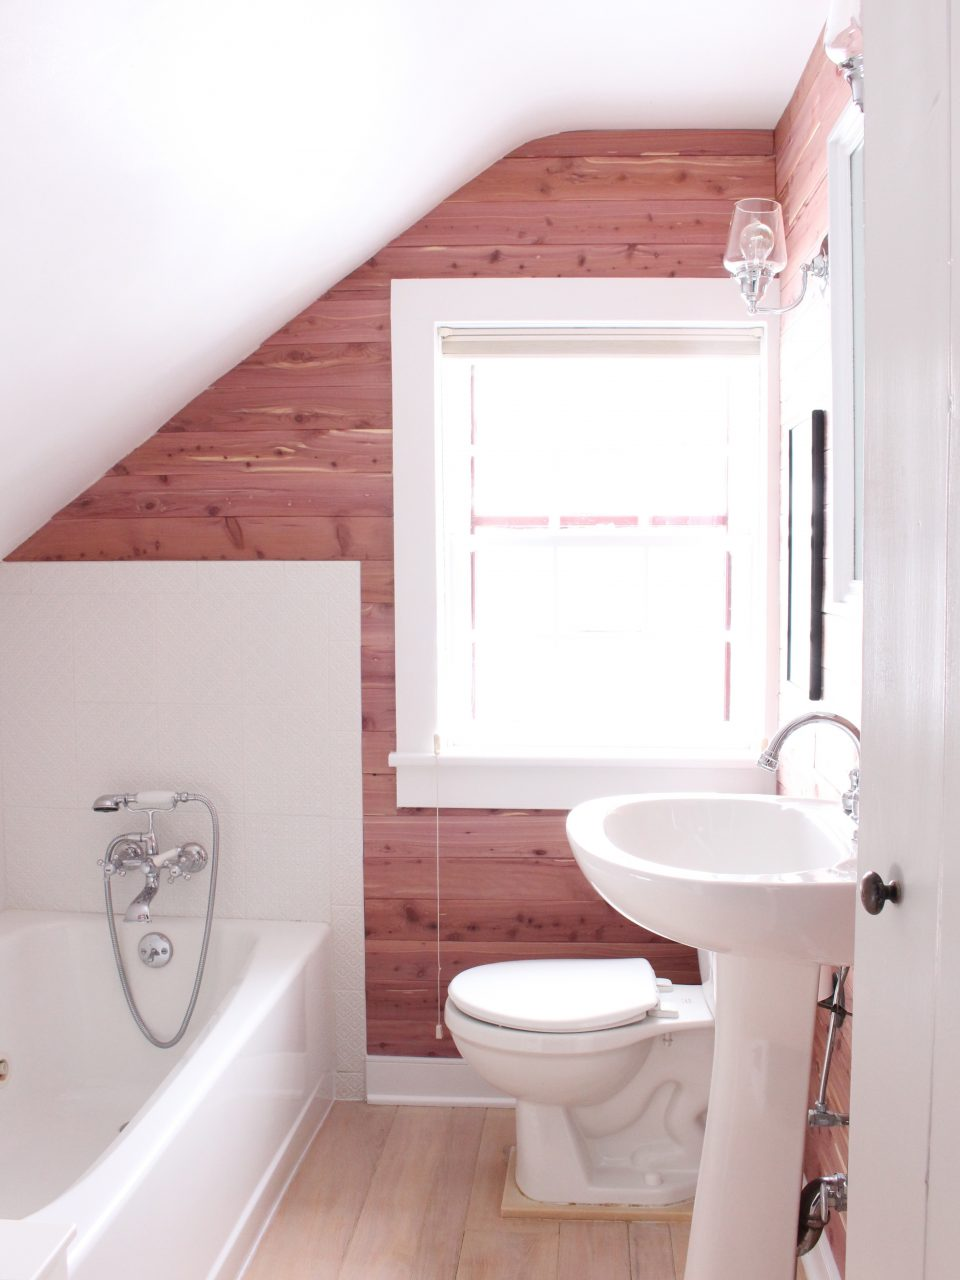 The Affordable Small Bathroom Under Stairs For 2018 Home Design